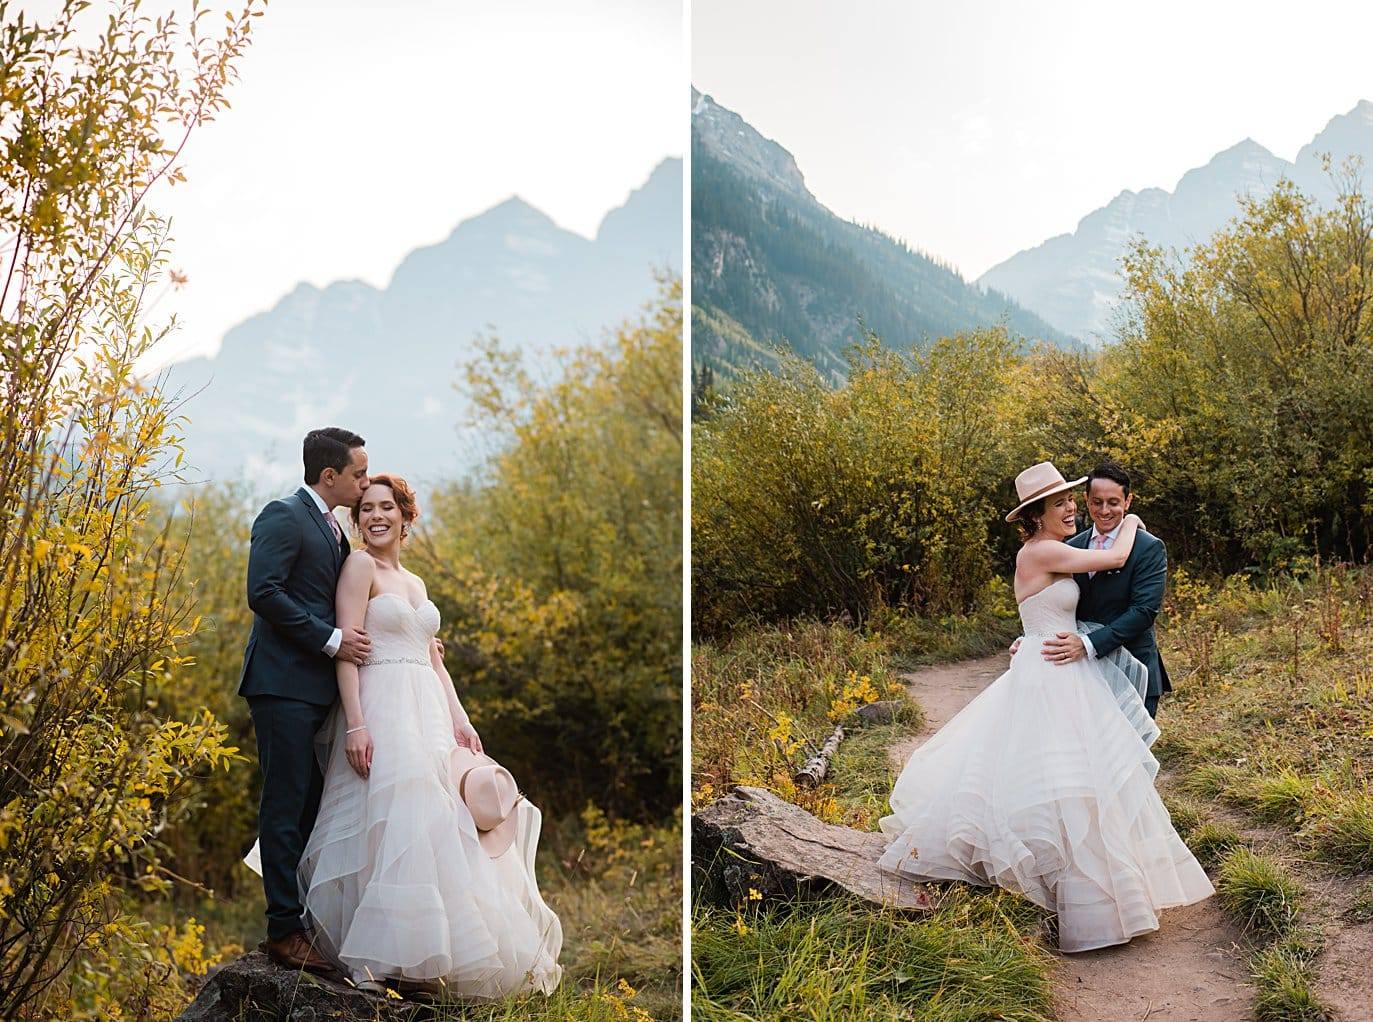 bride and groom cuddle in front of Maroon Bells peaks at fall Maroon Bells wedding by Snowmass wedding photographer Jennie Crate